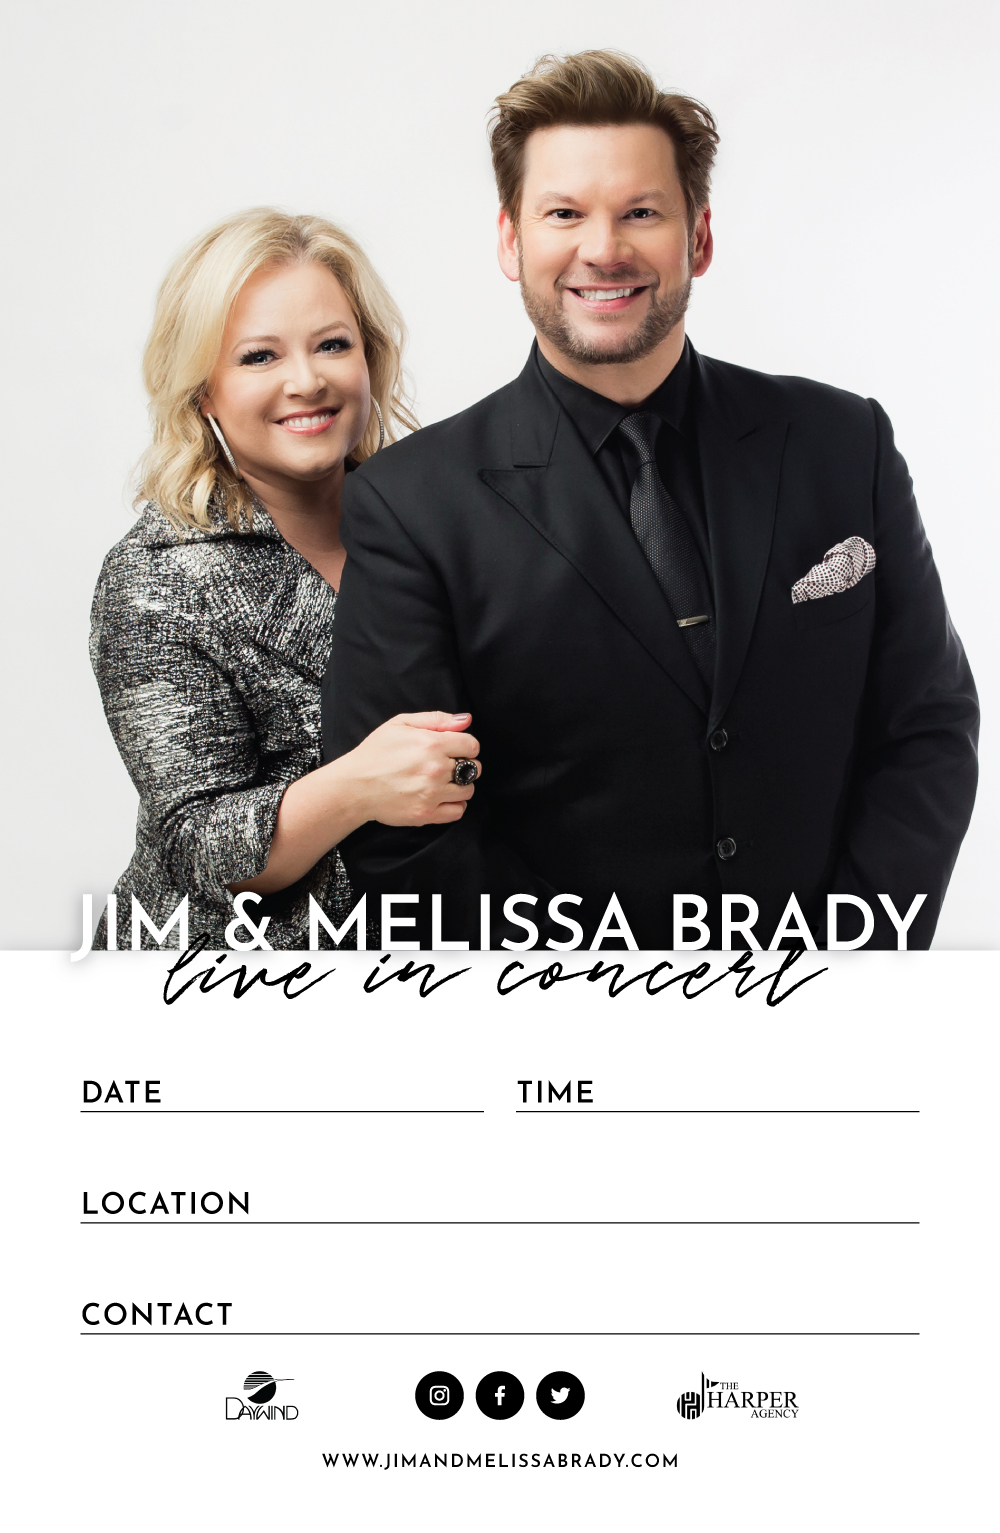 Jim and Melissa Brady | 11x17 Concert Poster